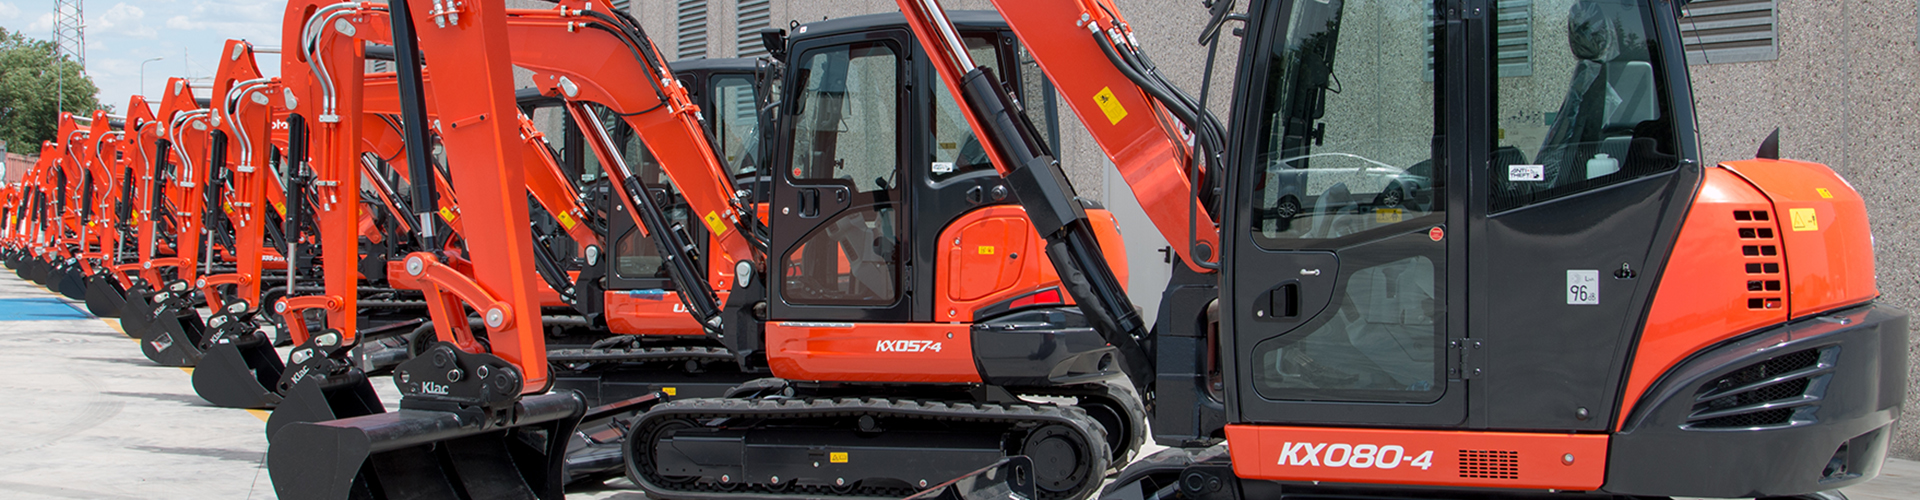 Kubota Construction Machinery